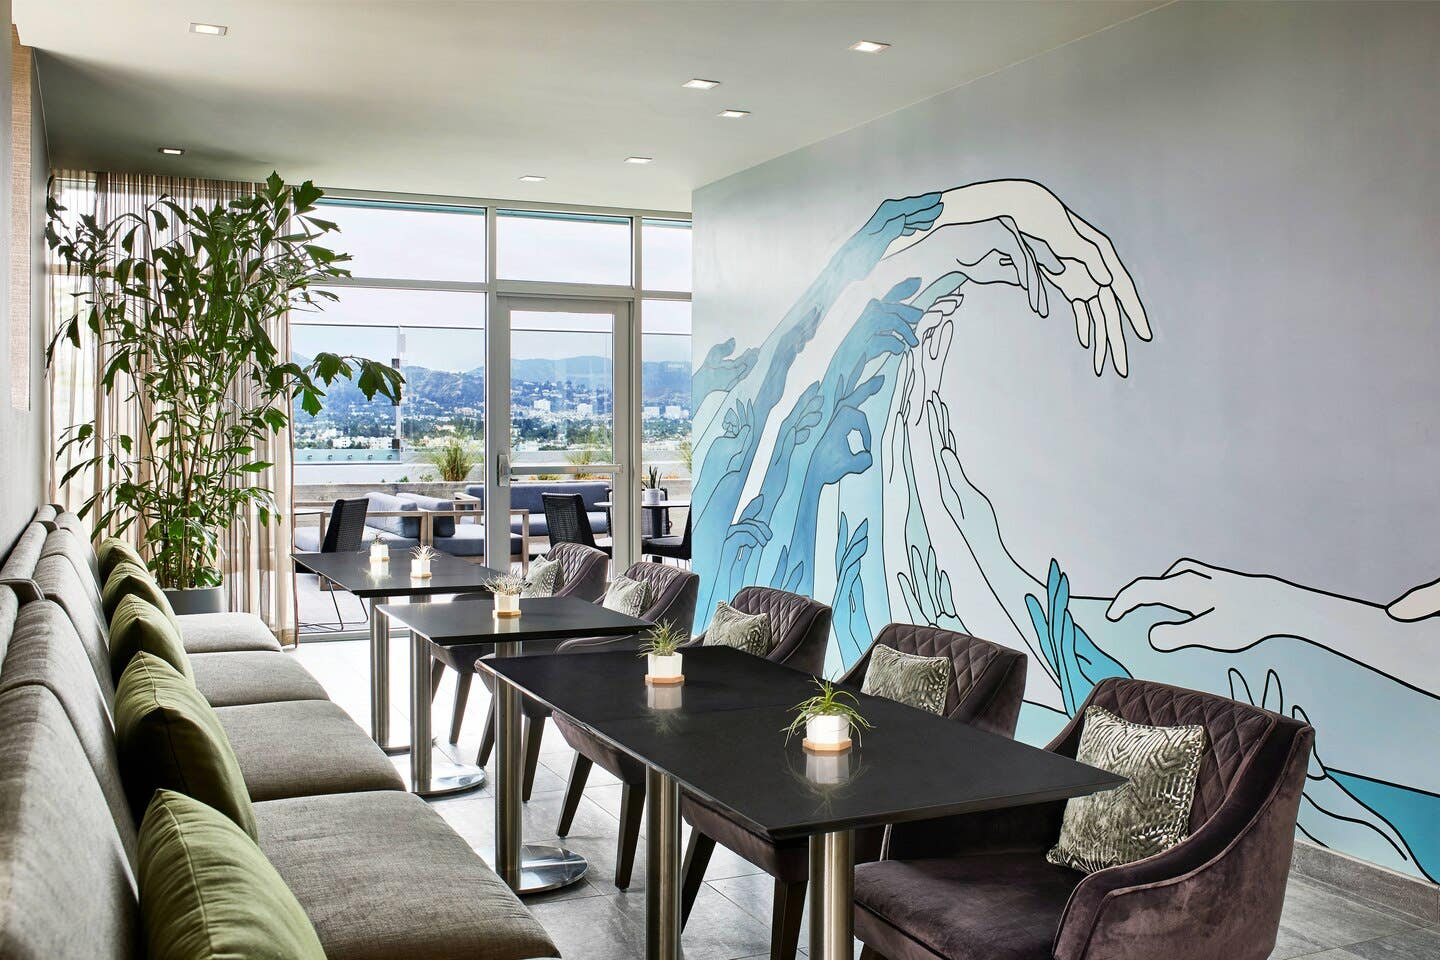 Wall mural inside Level Eleven Lounge at the AC Hotel Beverly Hills